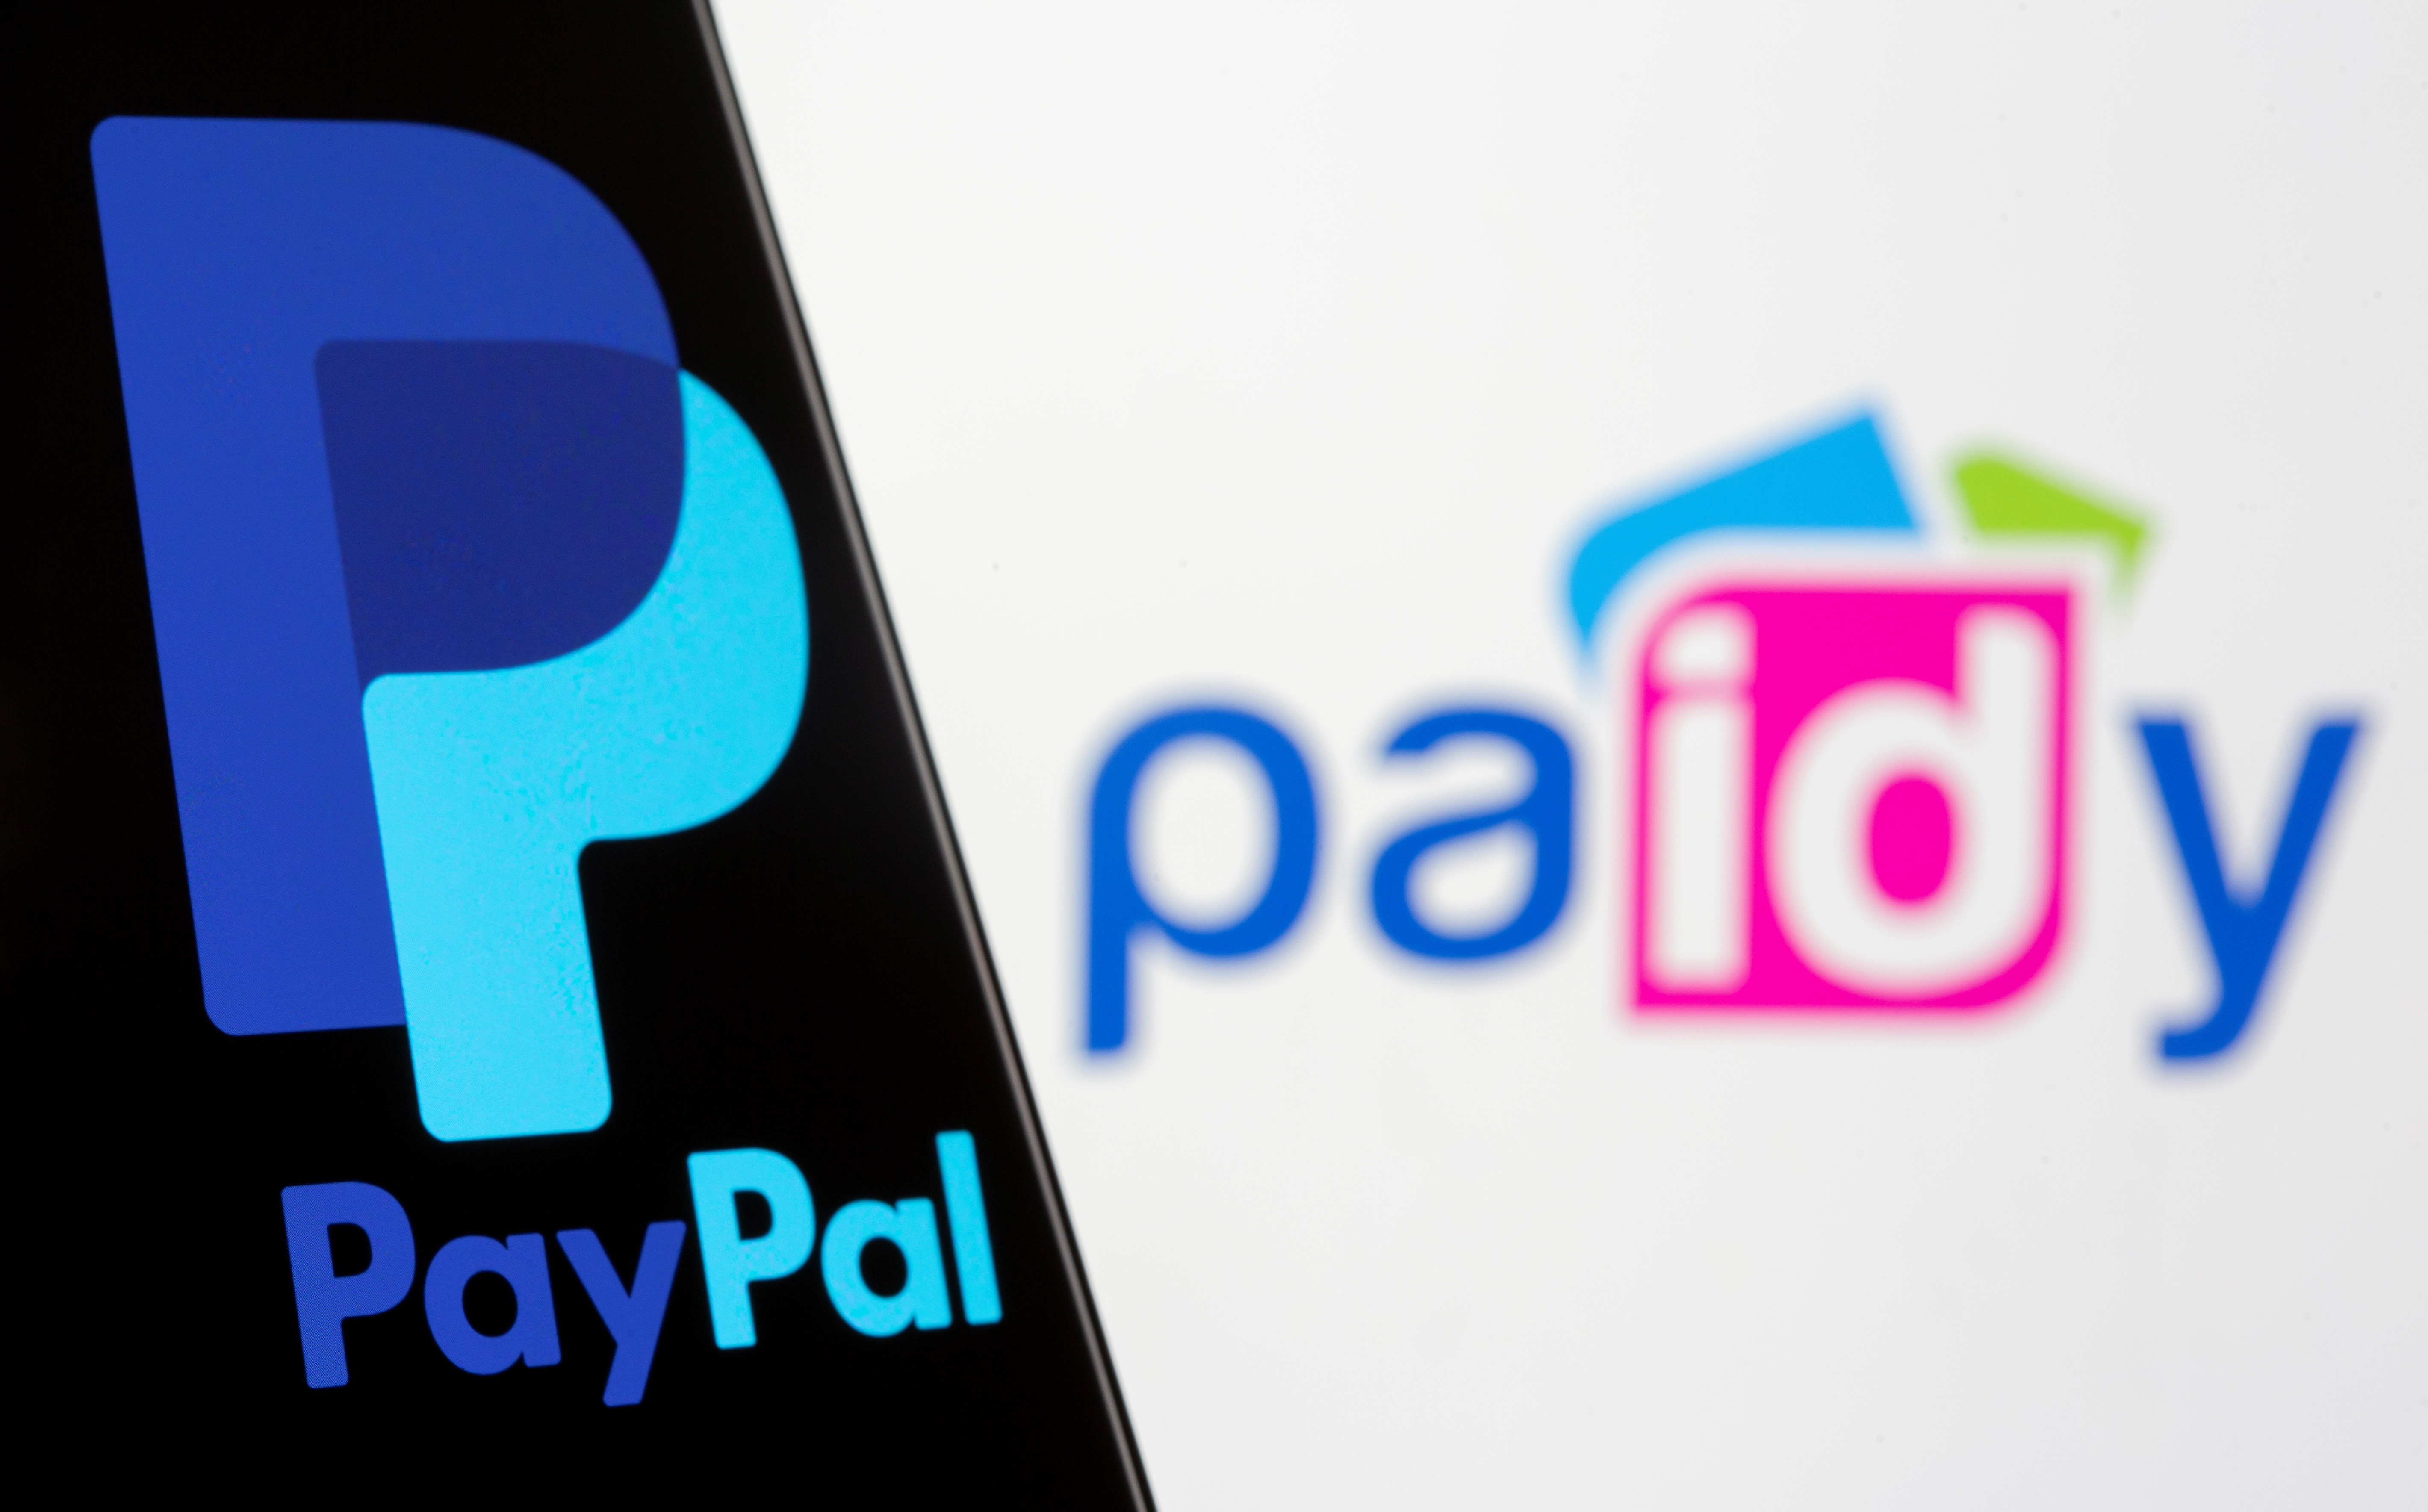 The PayPal logo is seen on a smartphone in front of a displayed Paidy logo in this illustration taken September 8, 2021. REUTERS/Dado Ruvic/Illustration